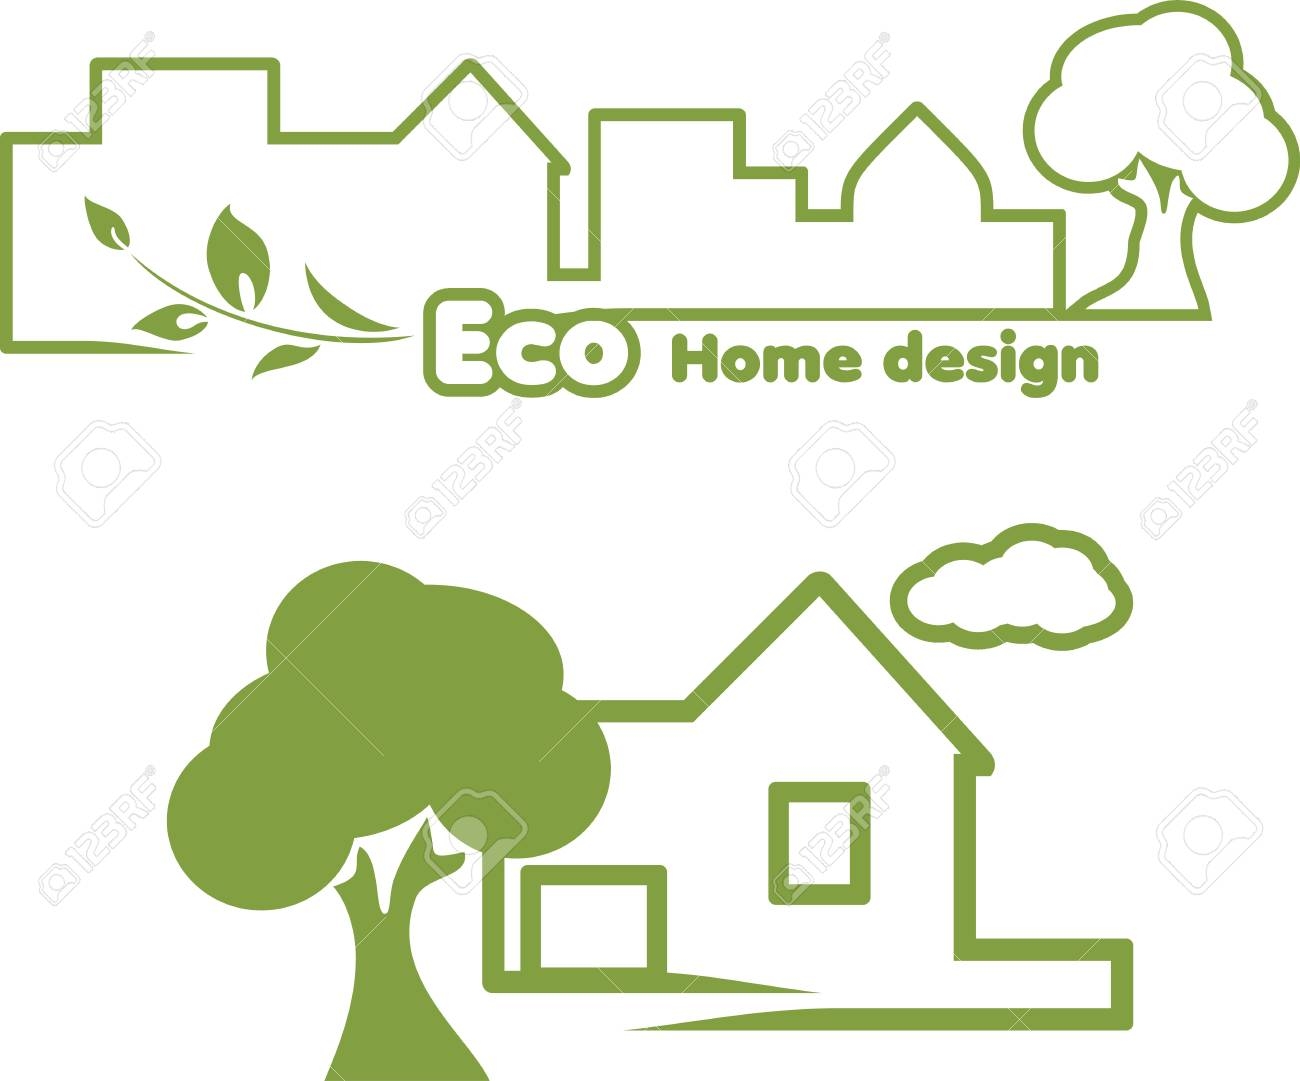 Eco Home Design Icons For Design Royalty Free Cliparts, Vectors, And ...